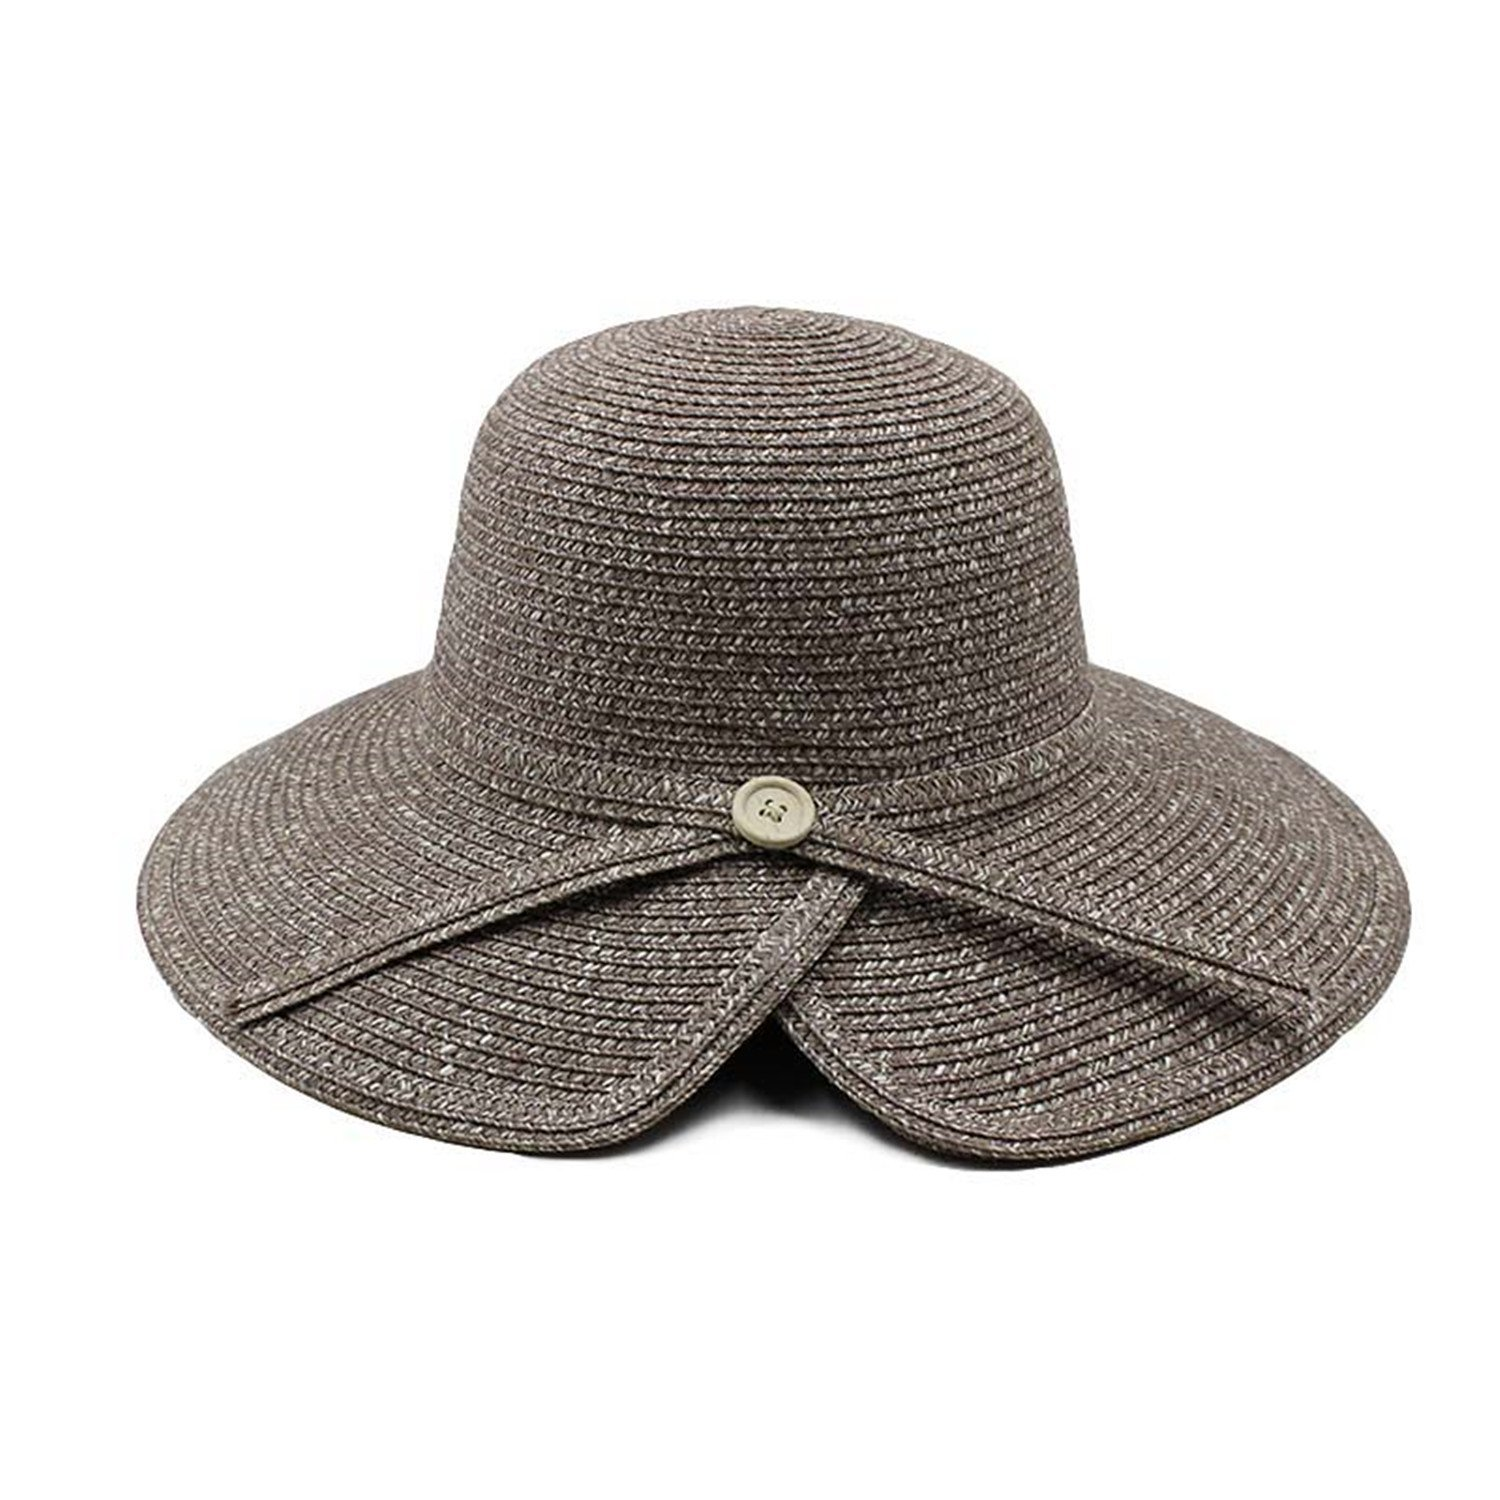 Gail Jonson Women Sun Hat Summer Straw Caps Fashion Lady Big Fedoras Hats with Button Paper Adult Casual Caps